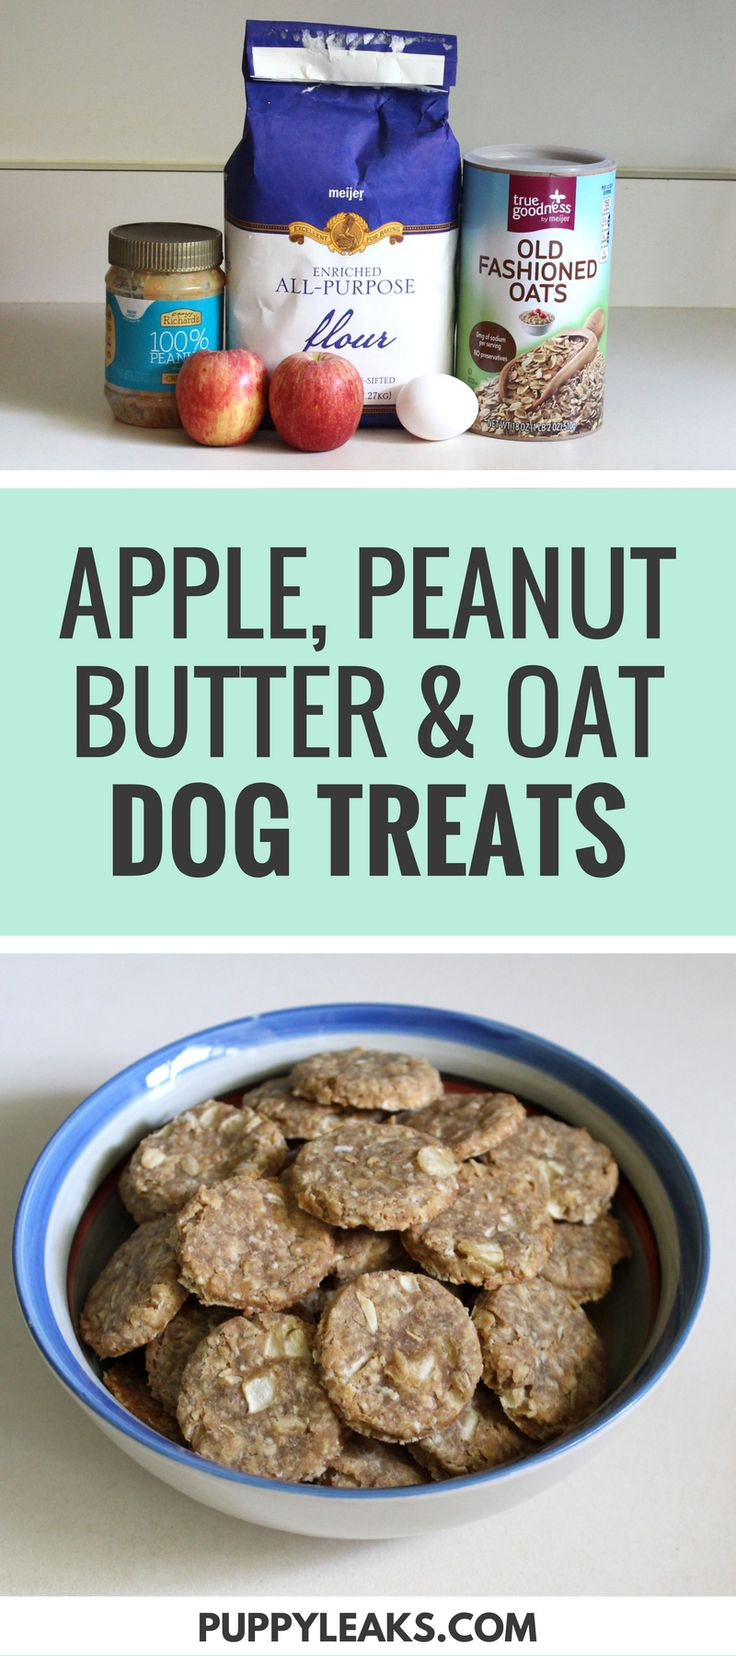 Looking for an easy homemade dog treat to make? Try this apple, peanut butter & oat dog treat recipe. #dogtreats #diydogstuff